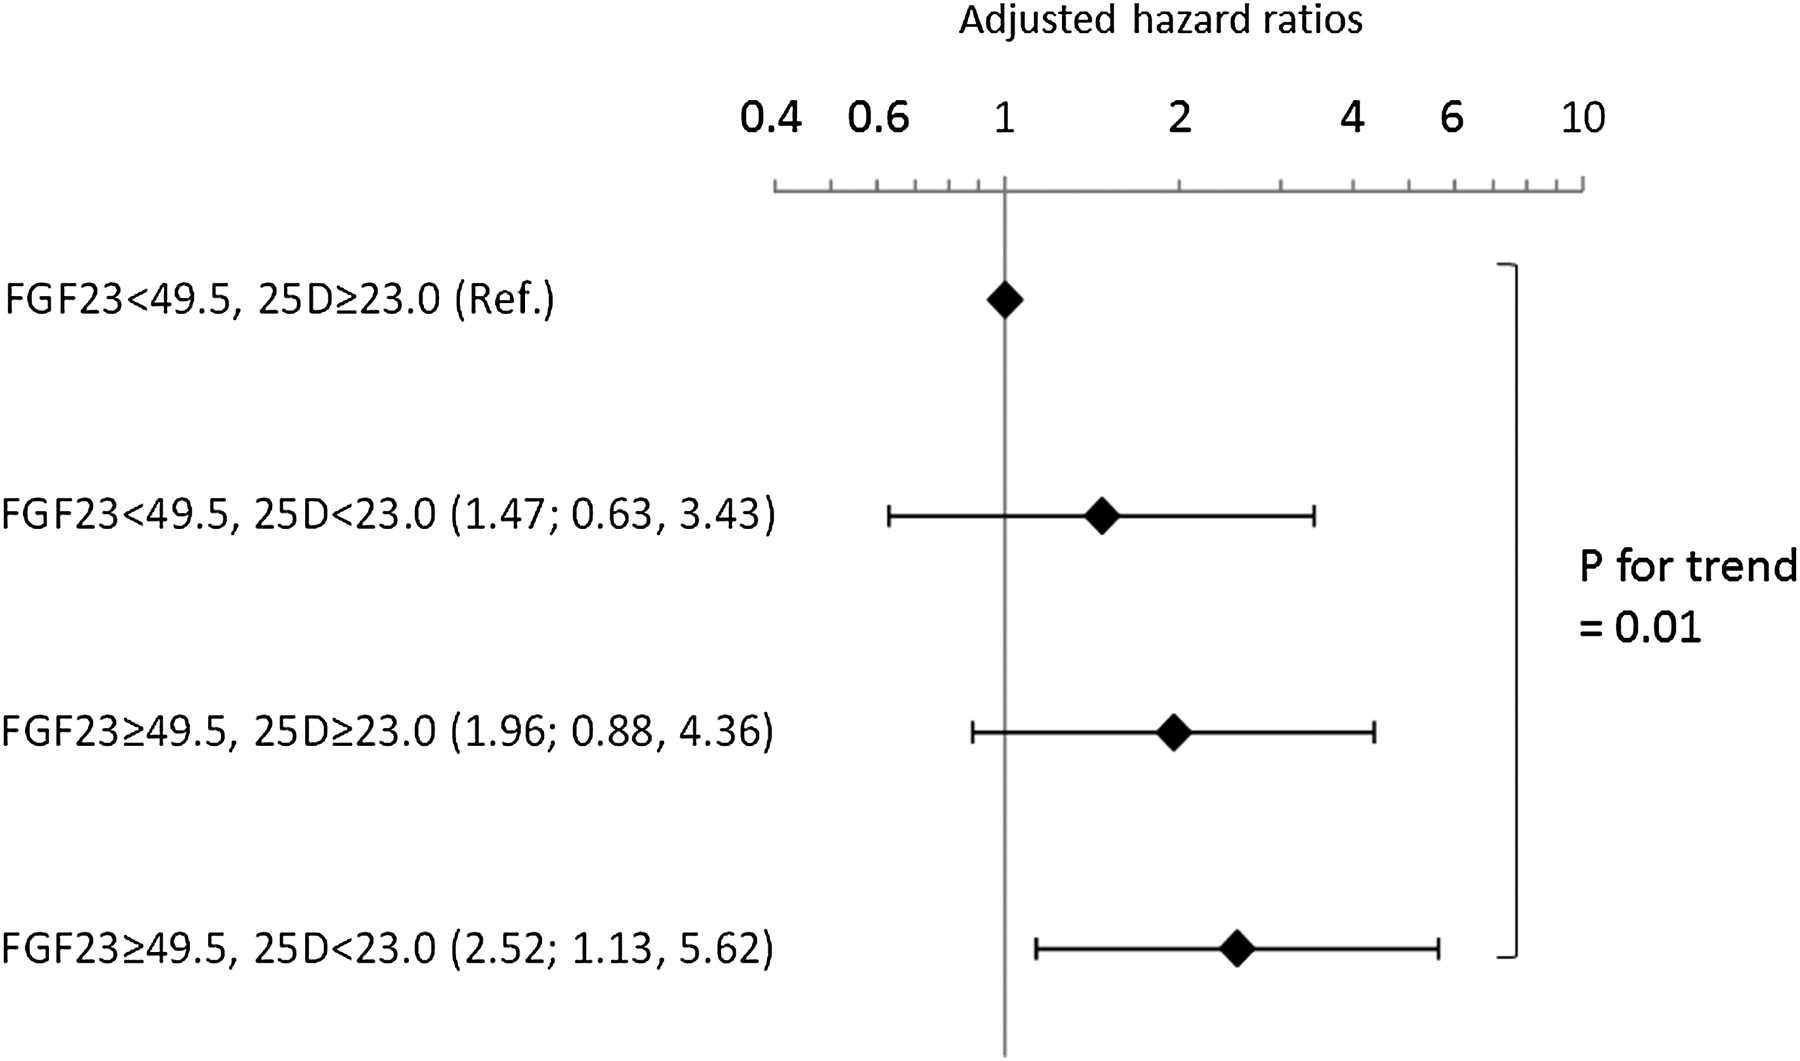 combined use of vitamin d status and fgf23 for risk stratification